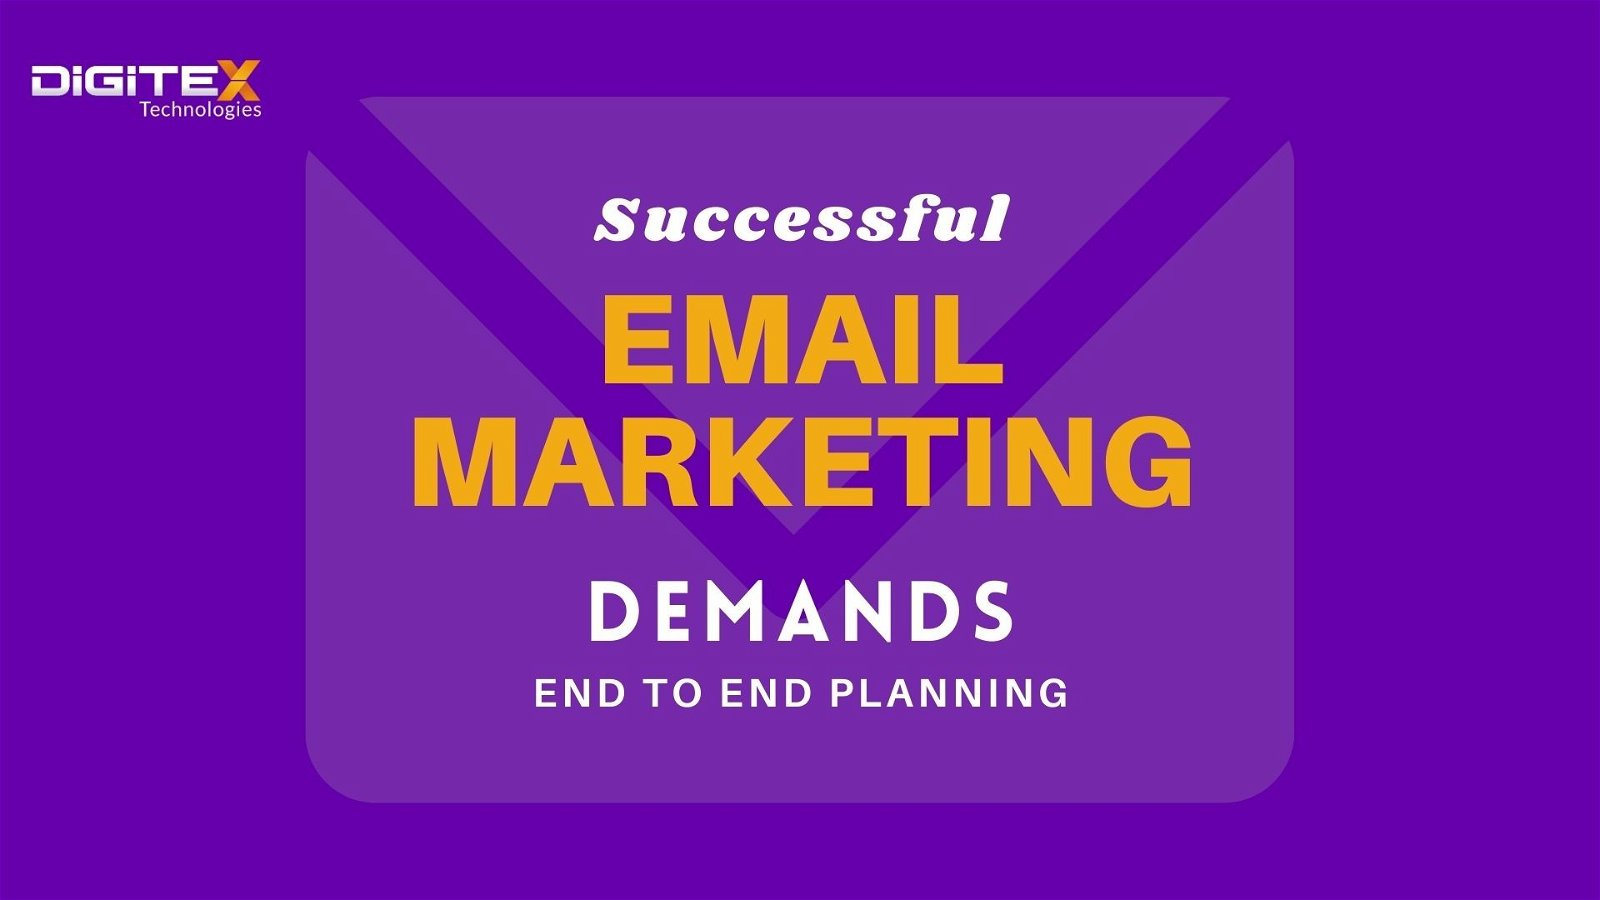 Successful Email Marketing Demands End To End Planning